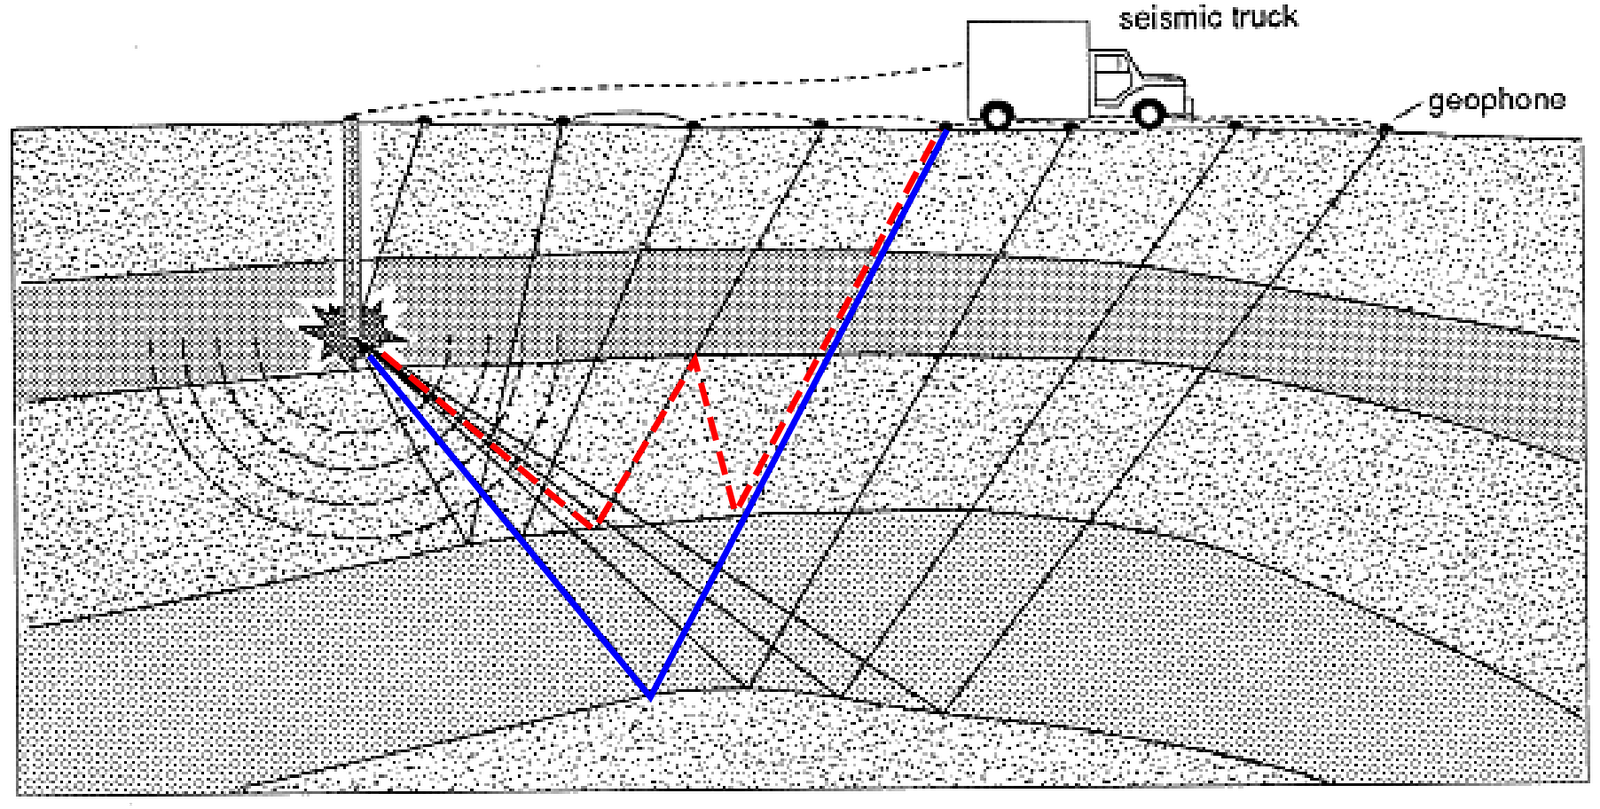 seismic thesis Three-dimensional seismic interpretation of miocene strata in vermilion and south marsh island areas, gulf of mexico by robert w rothengass, bs.